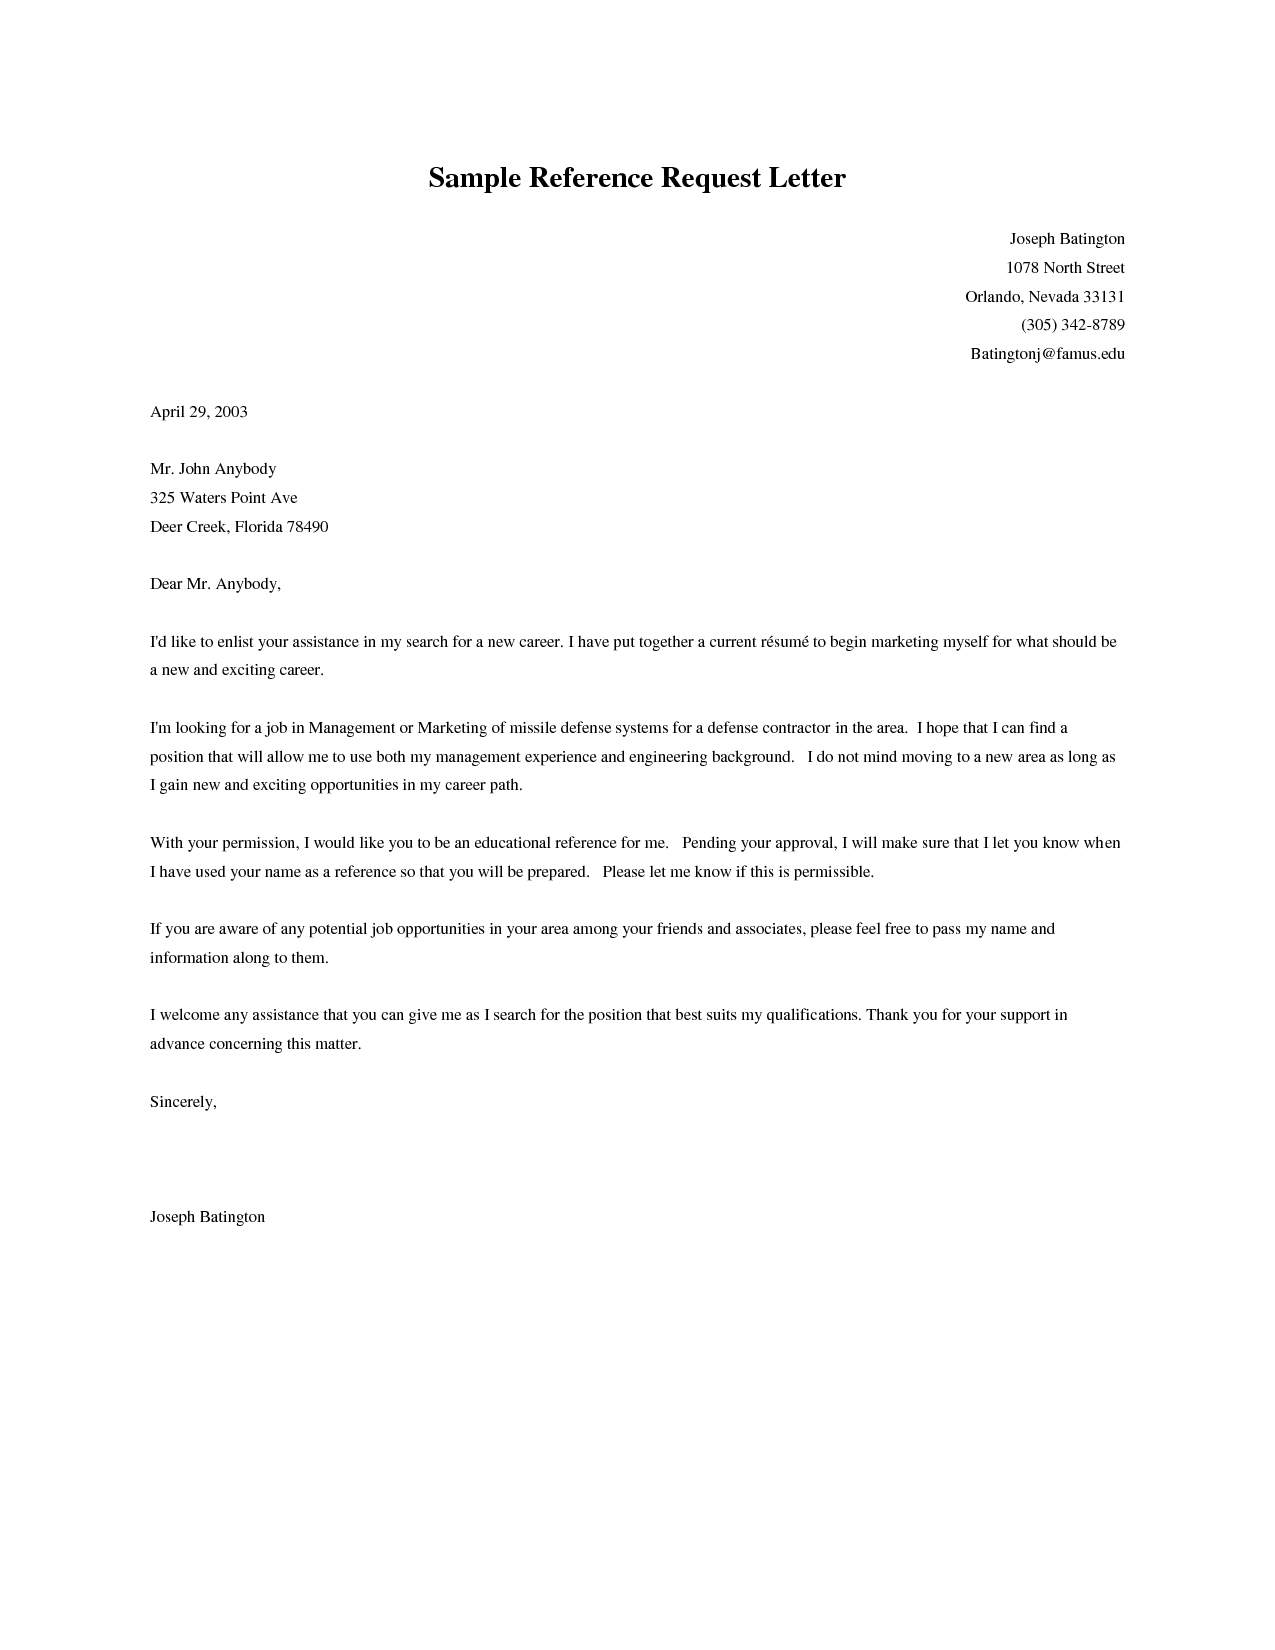 job reference request letter